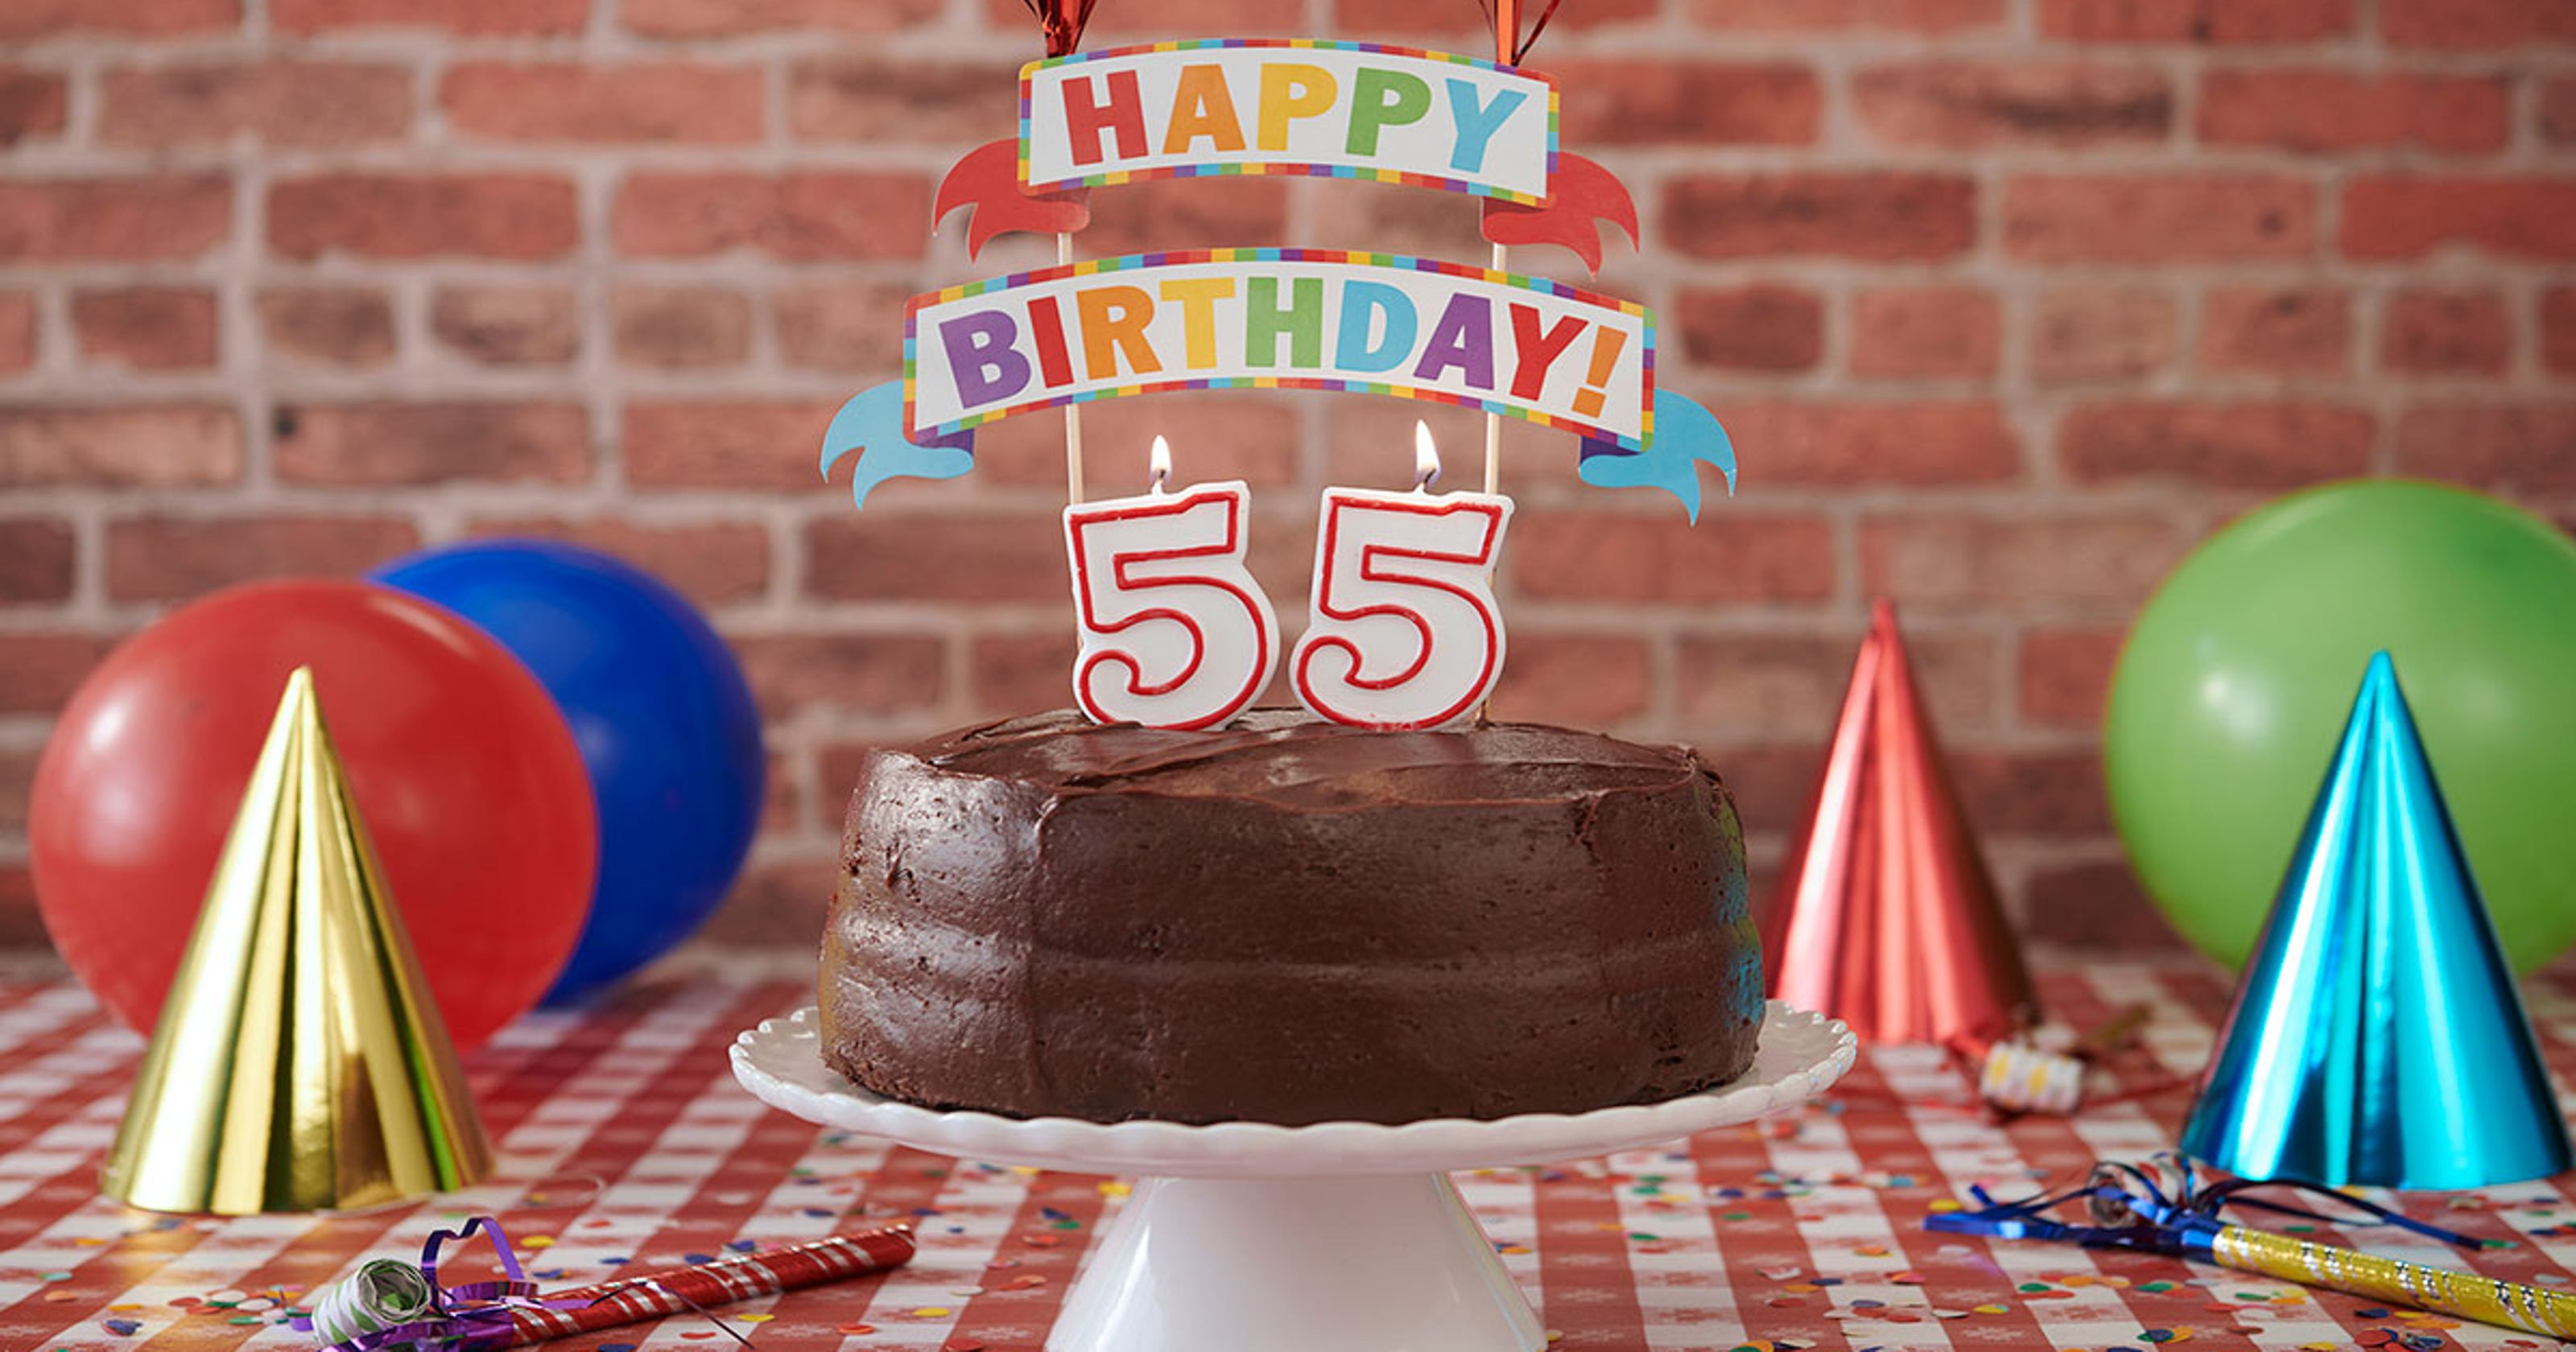 Portillos Cake Special 55 Cent Slices For The Restaurants Birthday